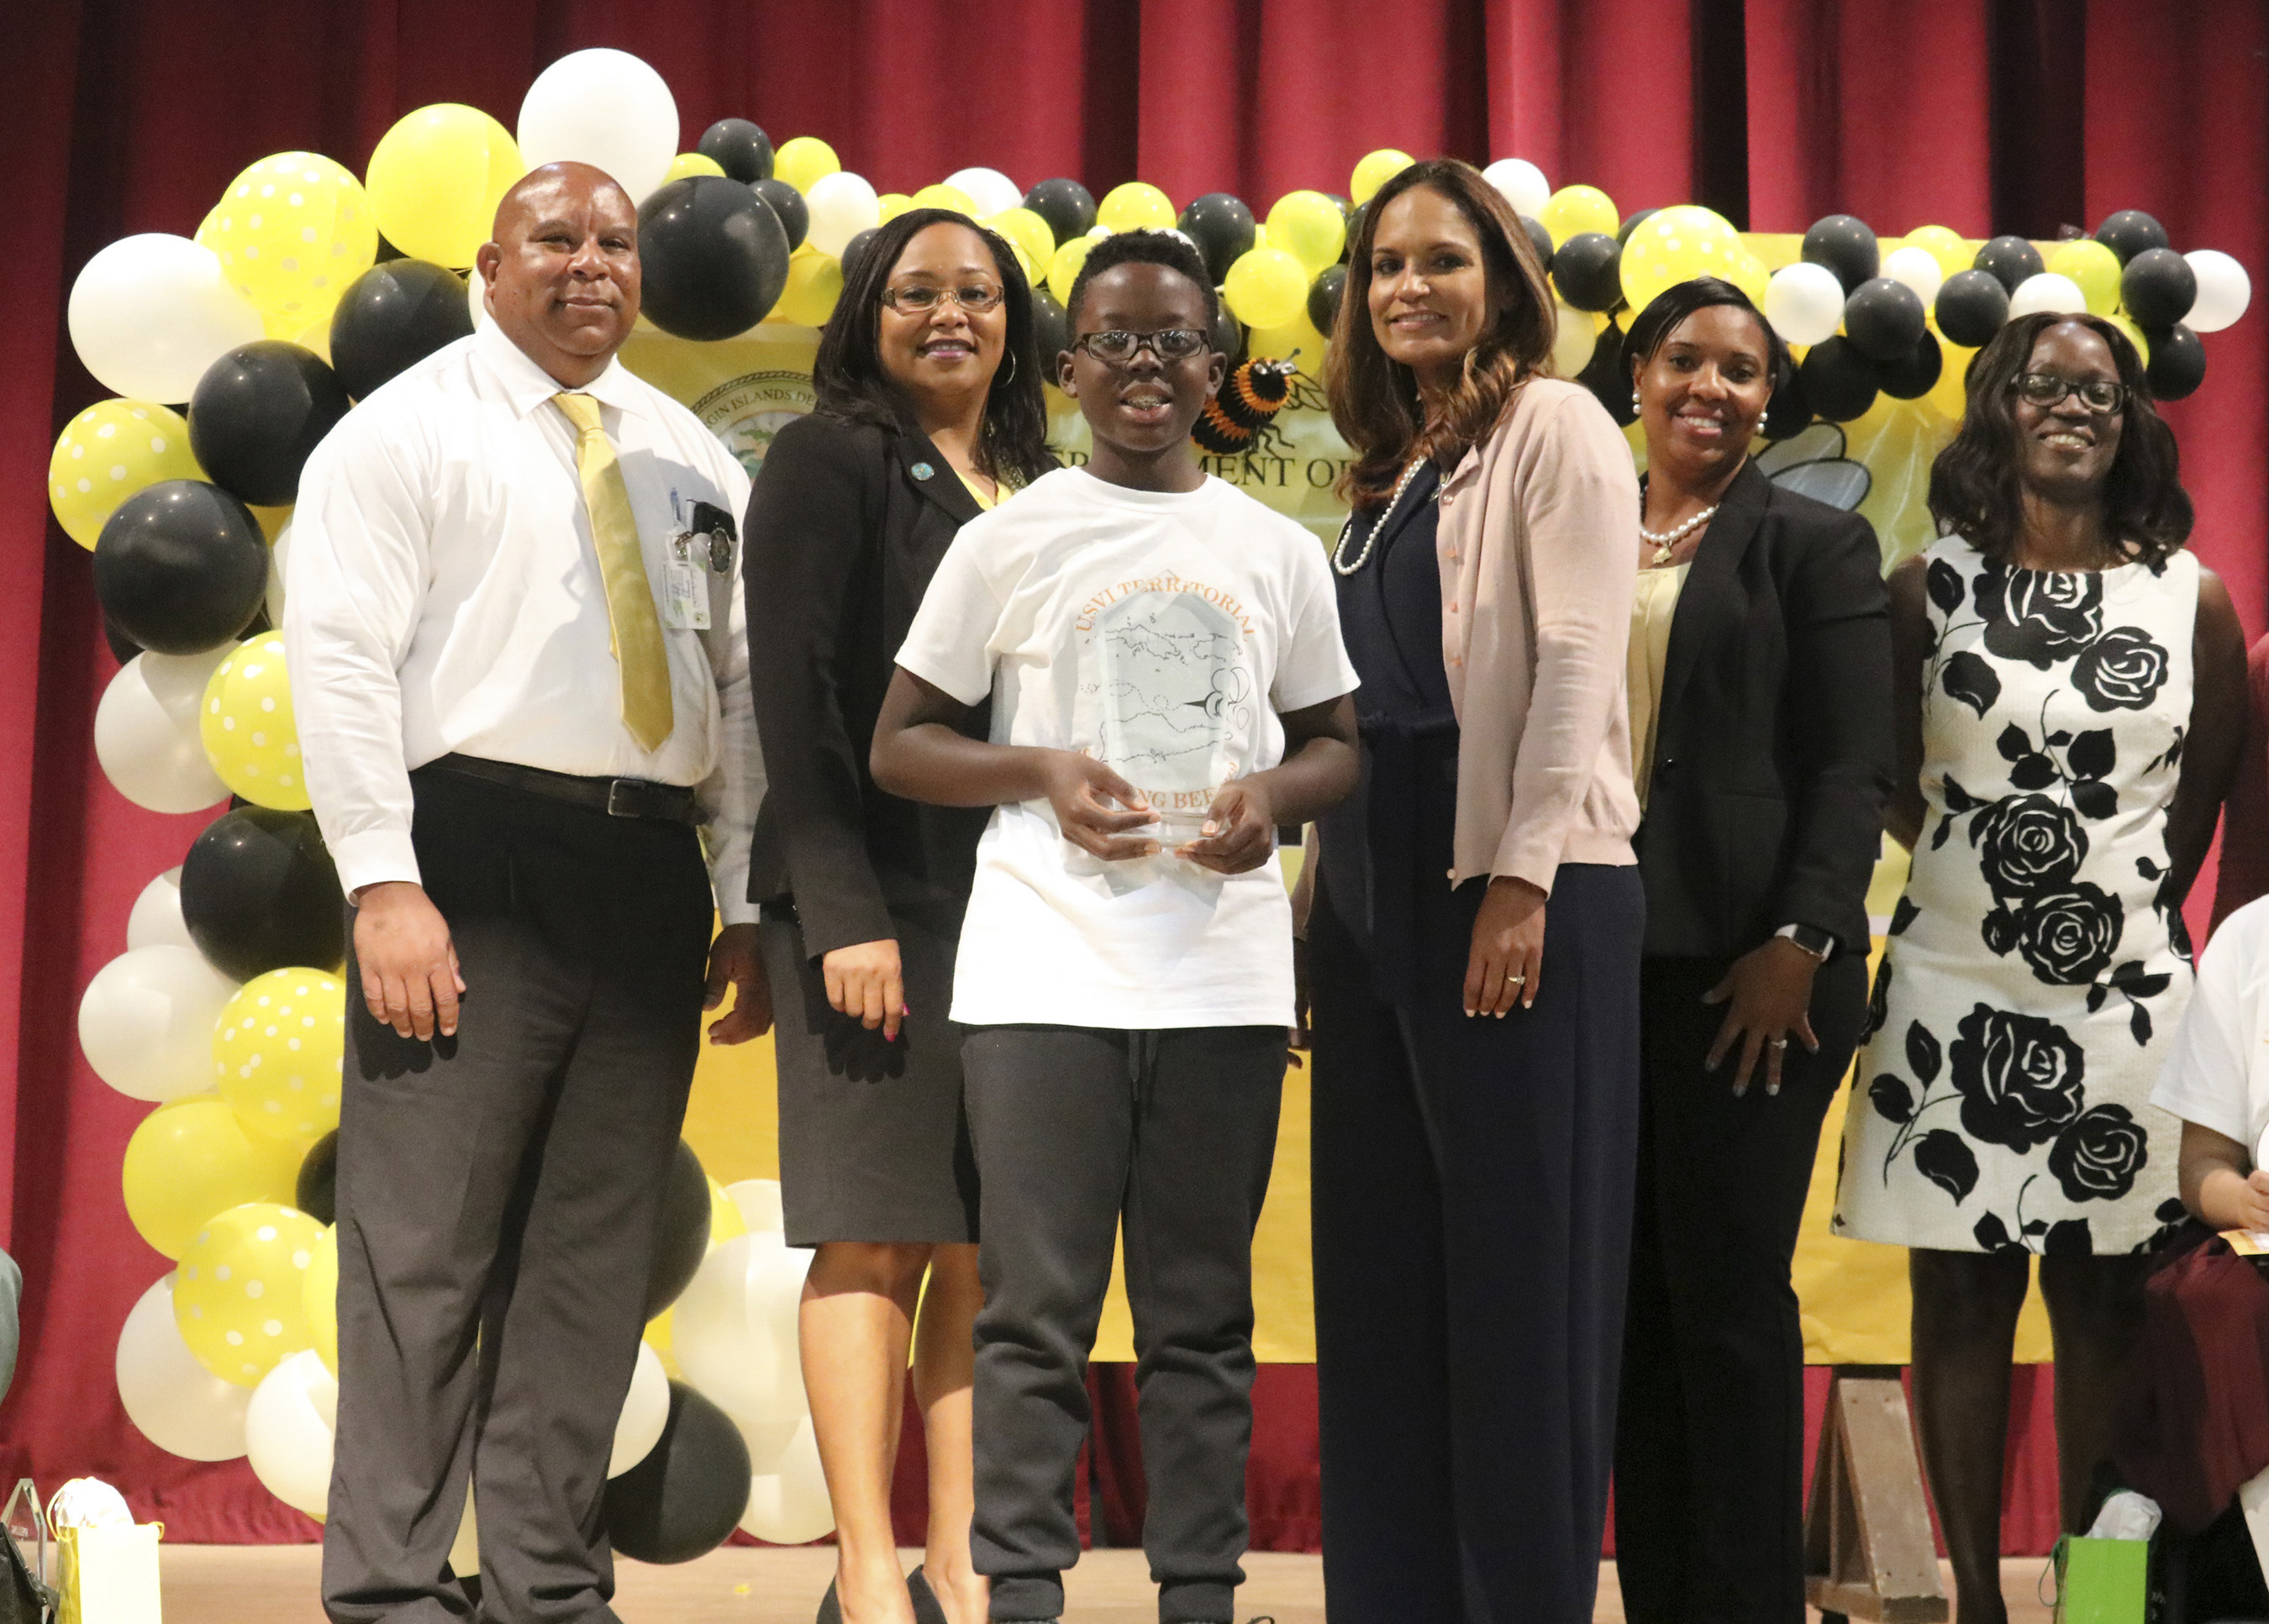 ST. CROIX'S MICHAEL ATWELL WINS 46TH ANNUAL TERRITORIAL SPELLING BEE